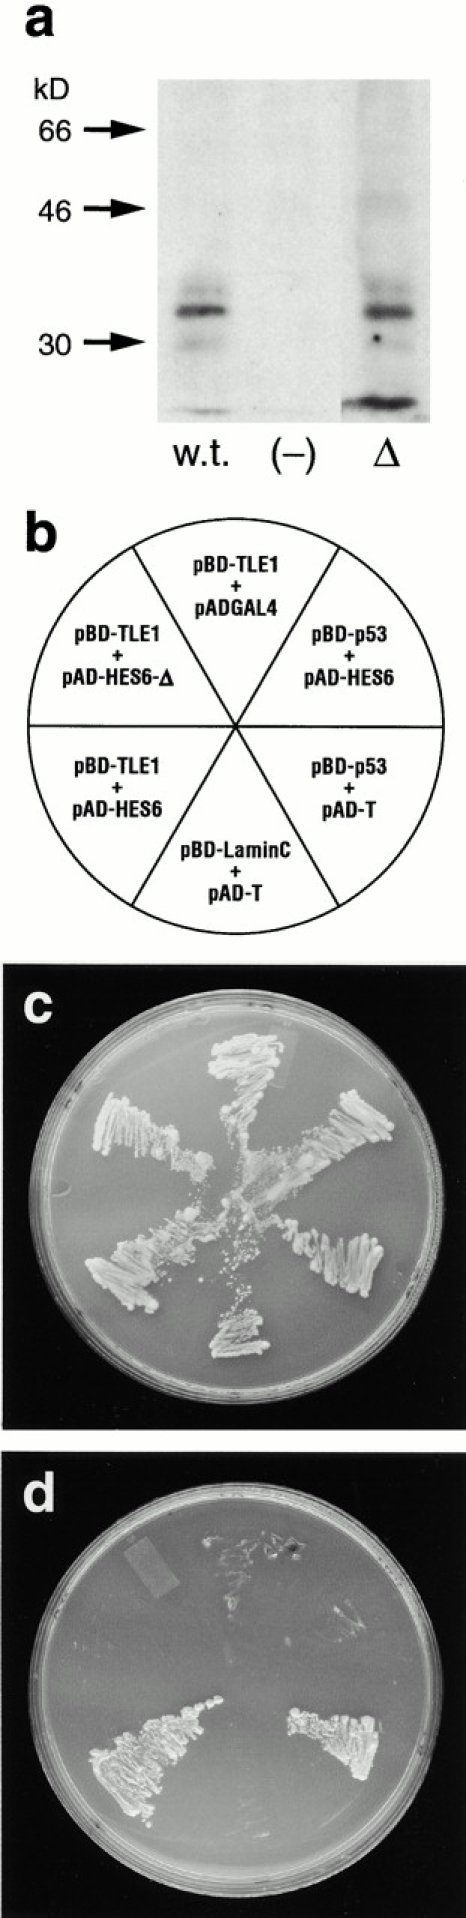 HES6 interacts with TLE1 in yeast cells. Yeast two- hybrid protein interaction assay. (a) Immunoblots of extracts from yeast cells transfected with pAD–HES6 (w.t.) or pAD–HES6-Δ (Δ) confirmed that both fusion proteins are produced in yeast cells. Left lane, molecular size markers in kiloDaltons. (b) Bait and target plasmids used to cotransfect yeast. BD, binding domain of GAL4; AD, activation domain of GAL4. The positive controls, pBD-p53 and pAD-T, were supplied with Stratagene's HybriZAP kit. (c) Growth on Leu − , Trp − plates. (d) Growth on Leu − , Trp − , and His − plates. The ability of the transformed cells to grow on His − medium indicates that a transcriptionally competent GAL4 complex was reconstituted due to the interaction between TLE1 and HES6. Note that the interaction requires the WRPW motif, as the HES6-Δ deletion mutant, deprived of this motif, did not interact with TLE1 to support growth on His − plates.